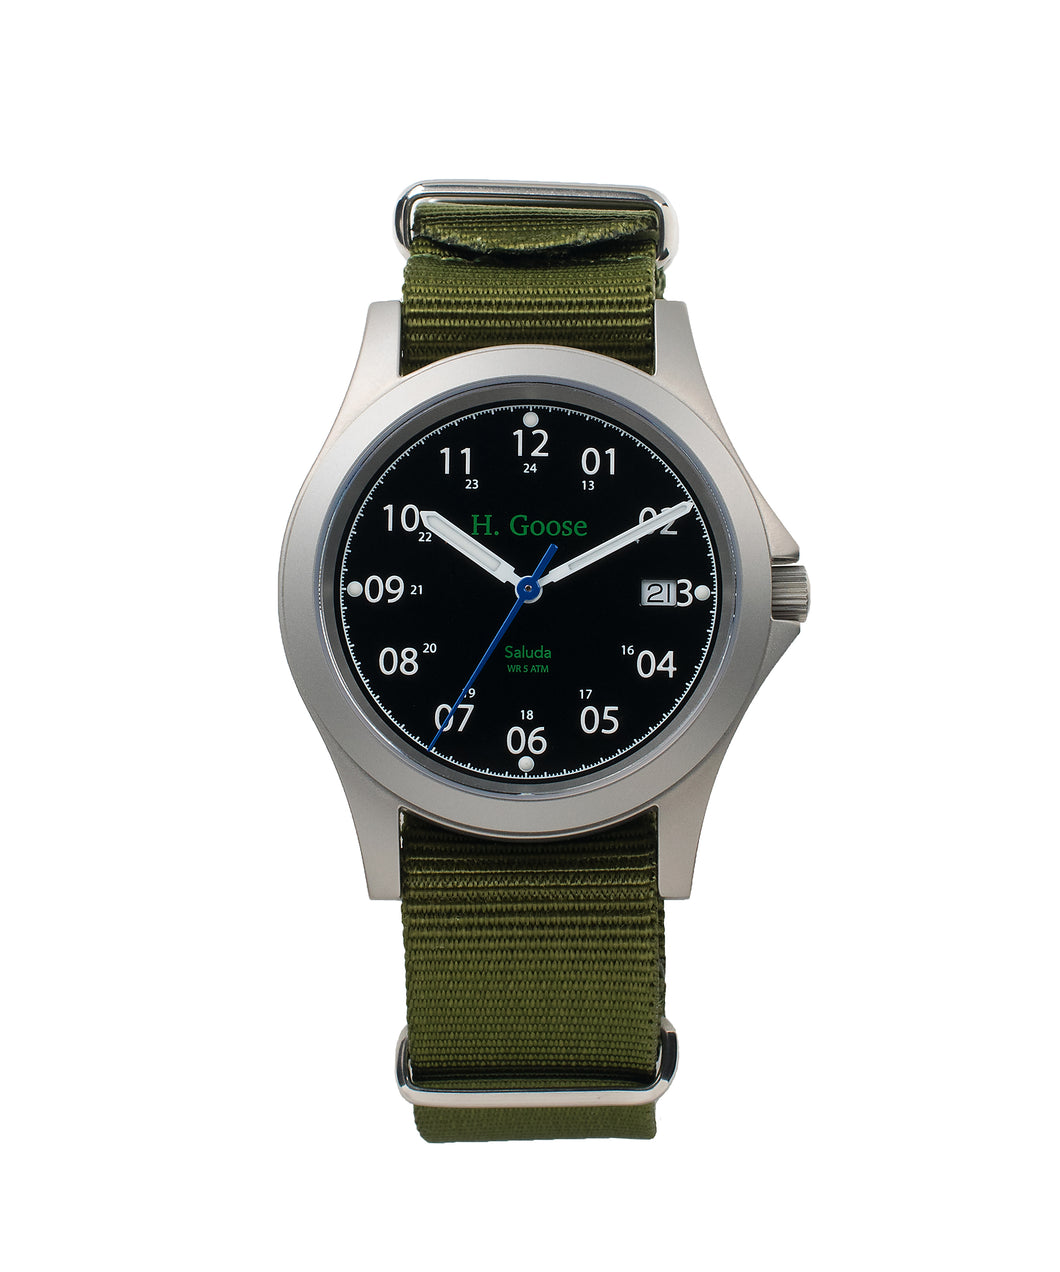 39mm Black Dial Saluda Field Watch with Green NATO Strap